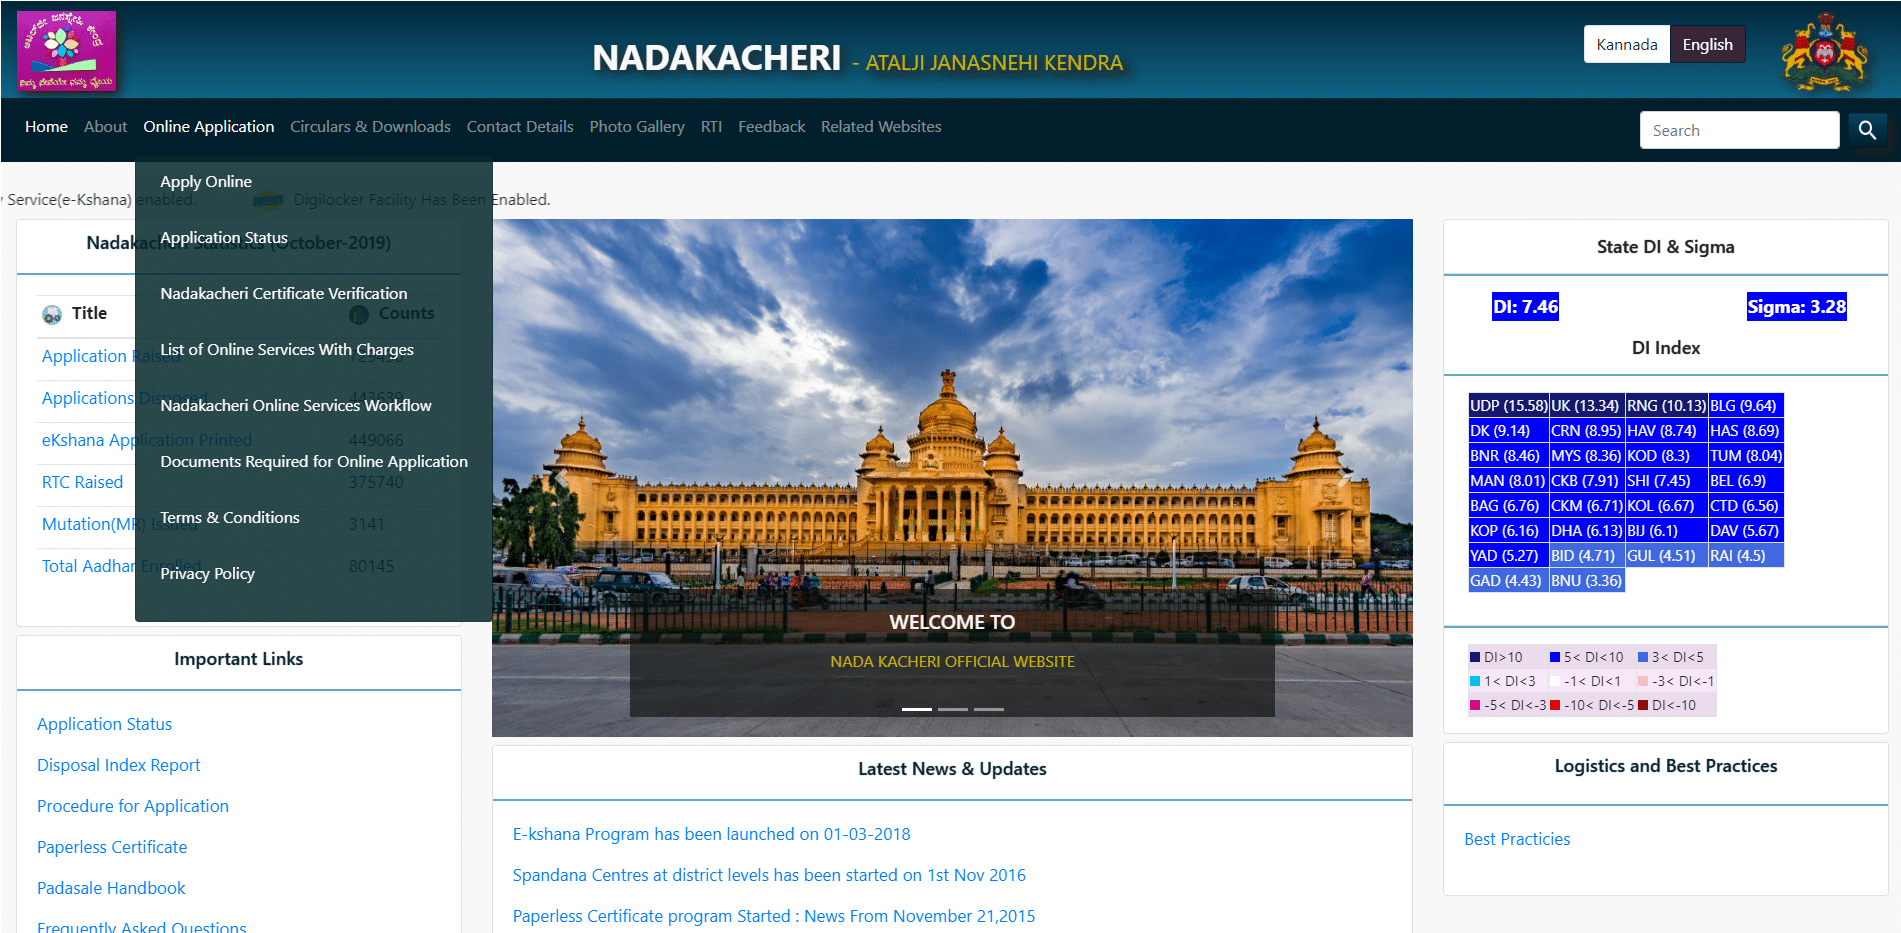 nadakacheri website